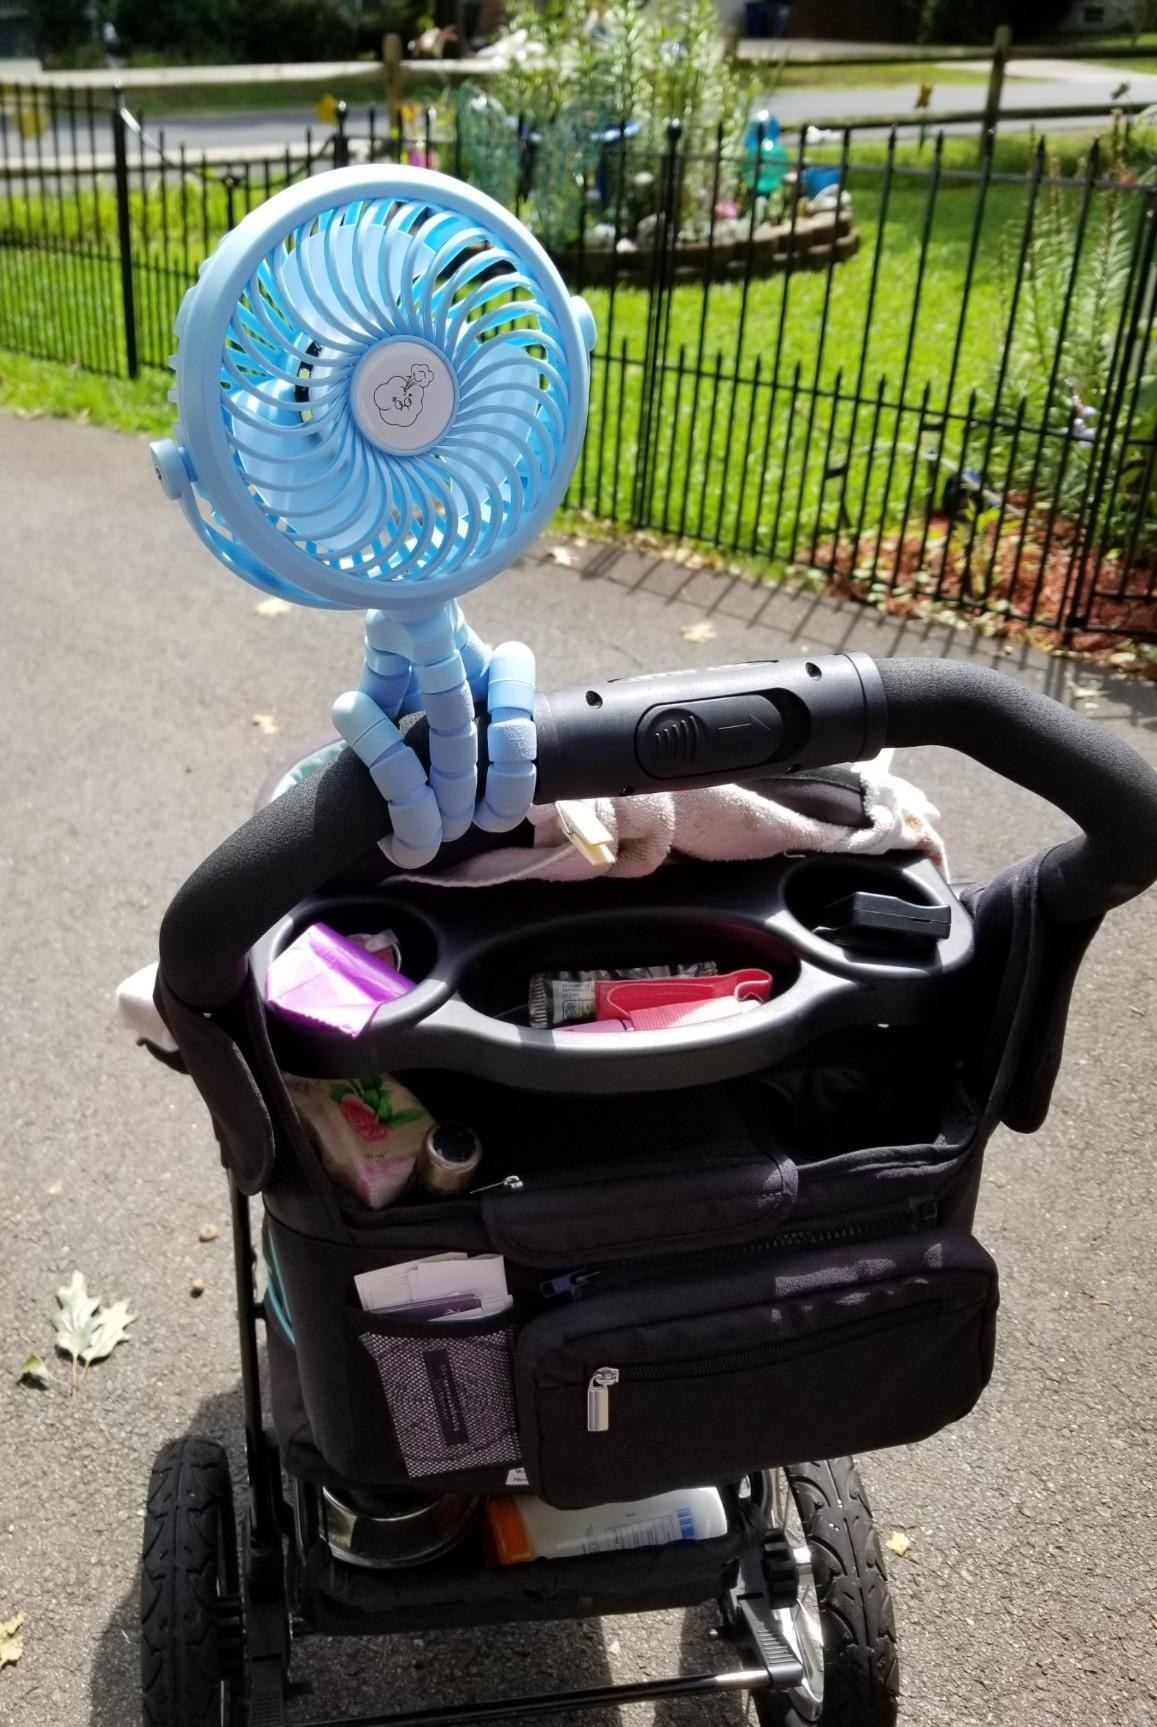 A reviewer's image of a light blue fan attached the handle of a stroller